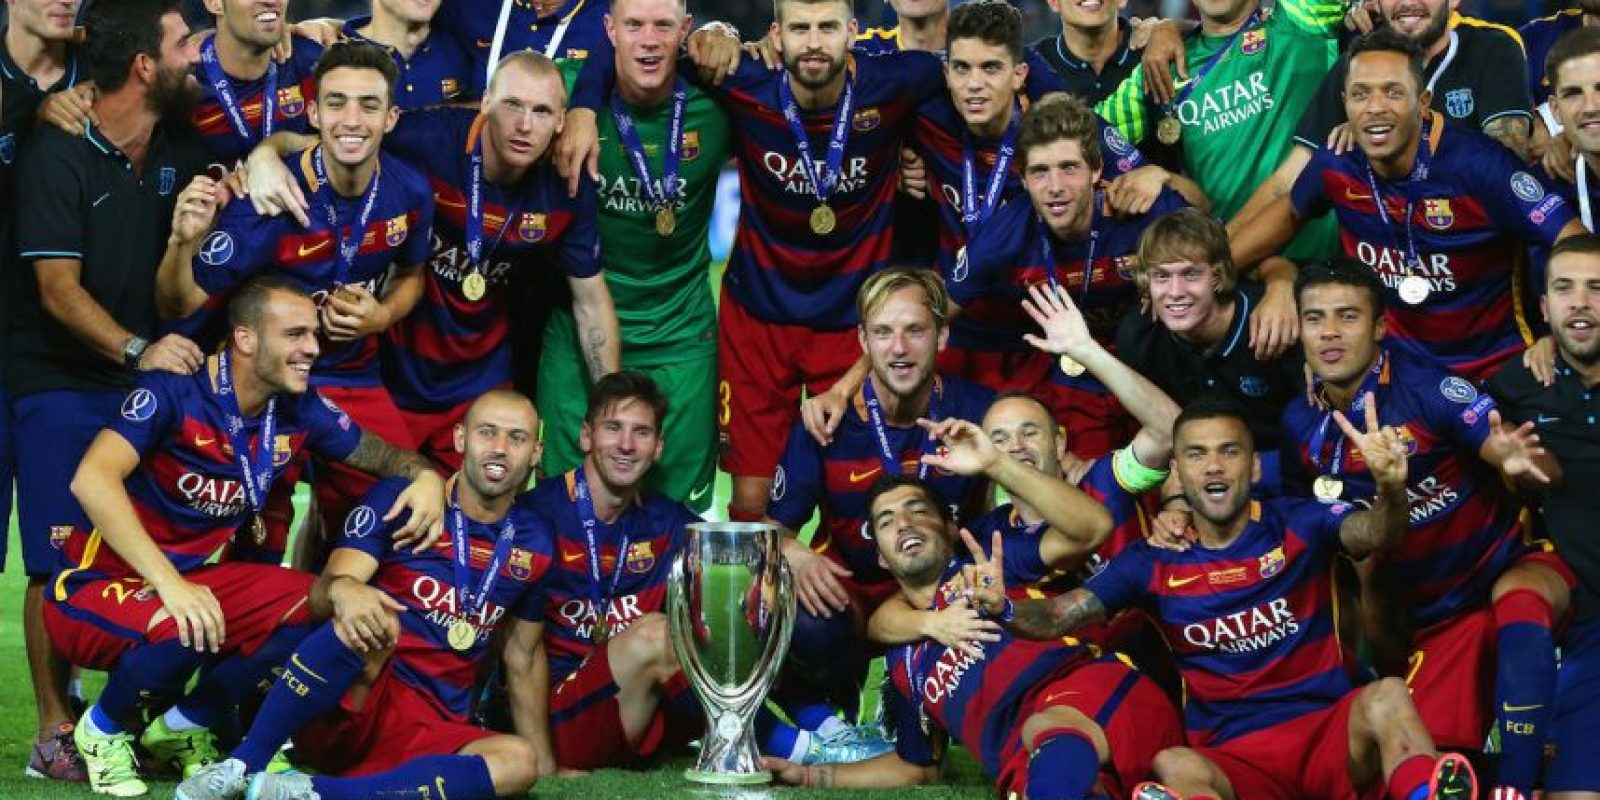 Barcelona (Campeón en 2014/2015) Foto: Getty Images